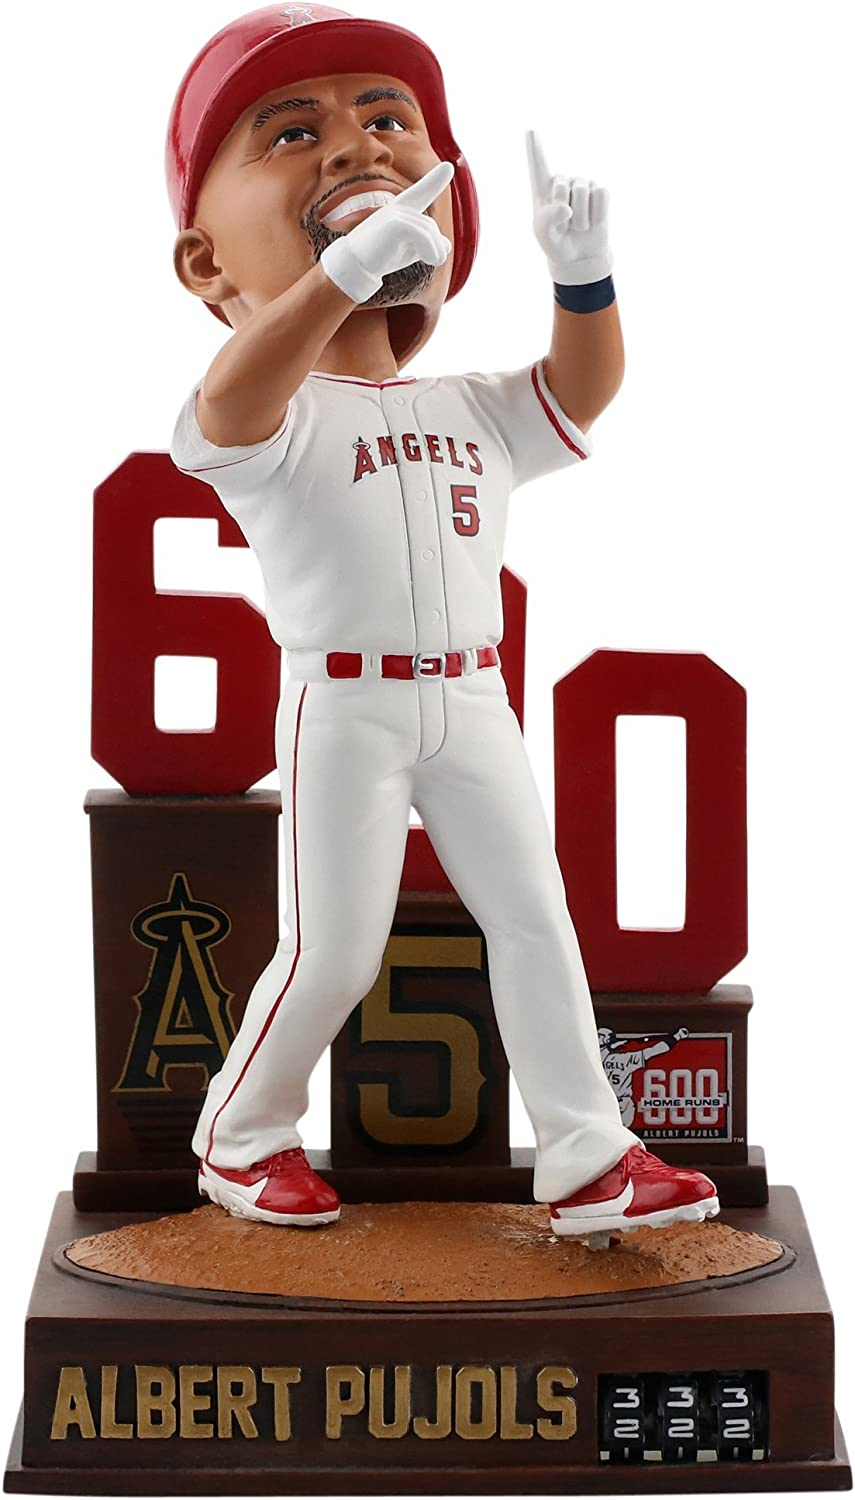 Forever Collectibles Albert Pujols Los Angeles Angels 600 Home Run - Home Run Tracker Bobblehead MLB